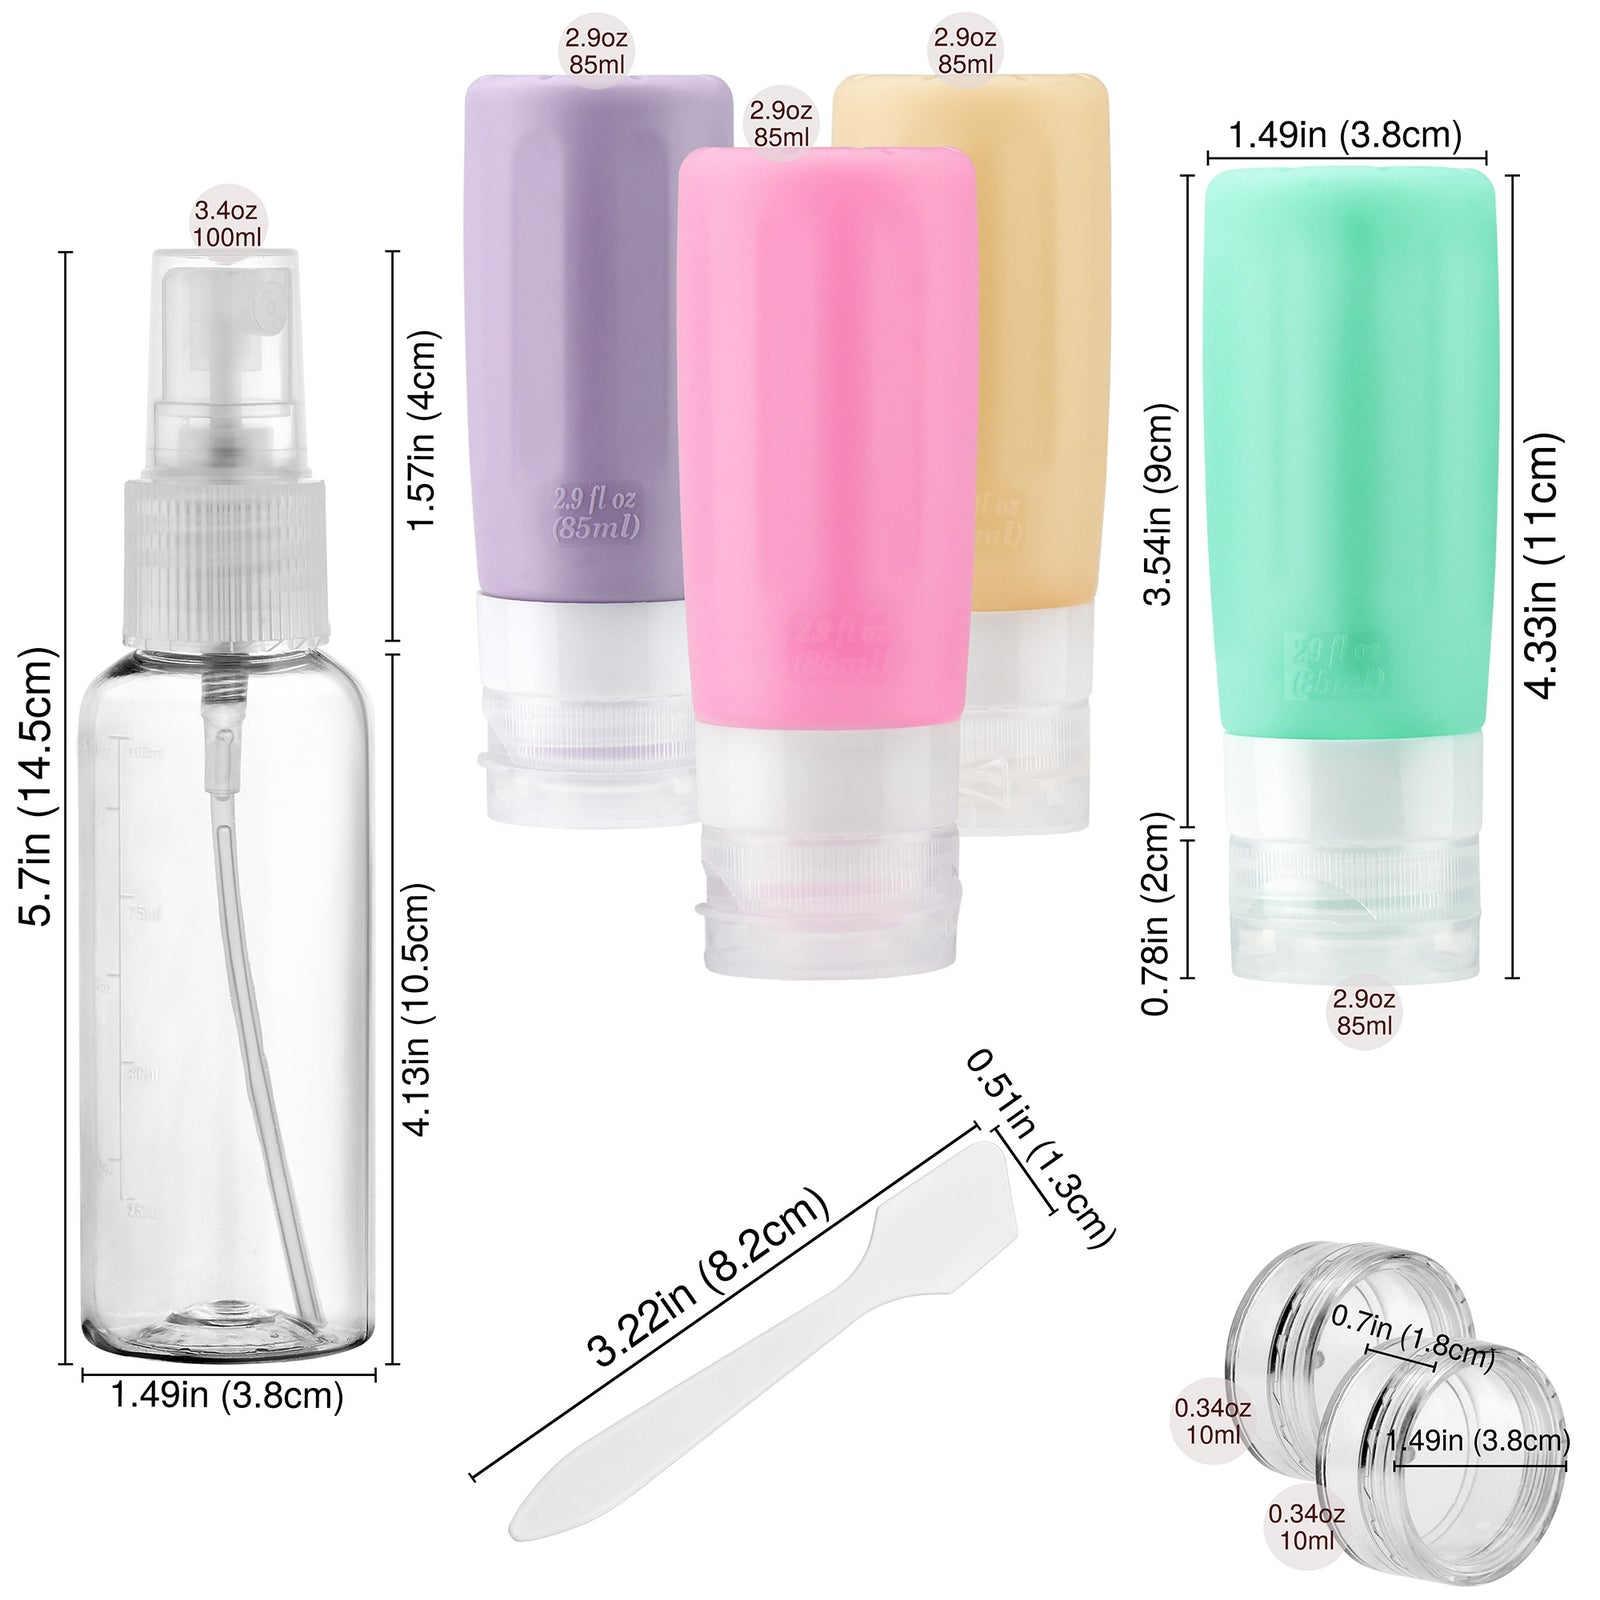 FiveSeasonStuff TSA Approved Silicone Leak Proof Travel Squeeze Bottles and Travel Spray Bottle with TSA Toiletry Bag (7 Pack) Warm Pastel Cheerful (Purple, Pink, Aqua Green & Apricot)